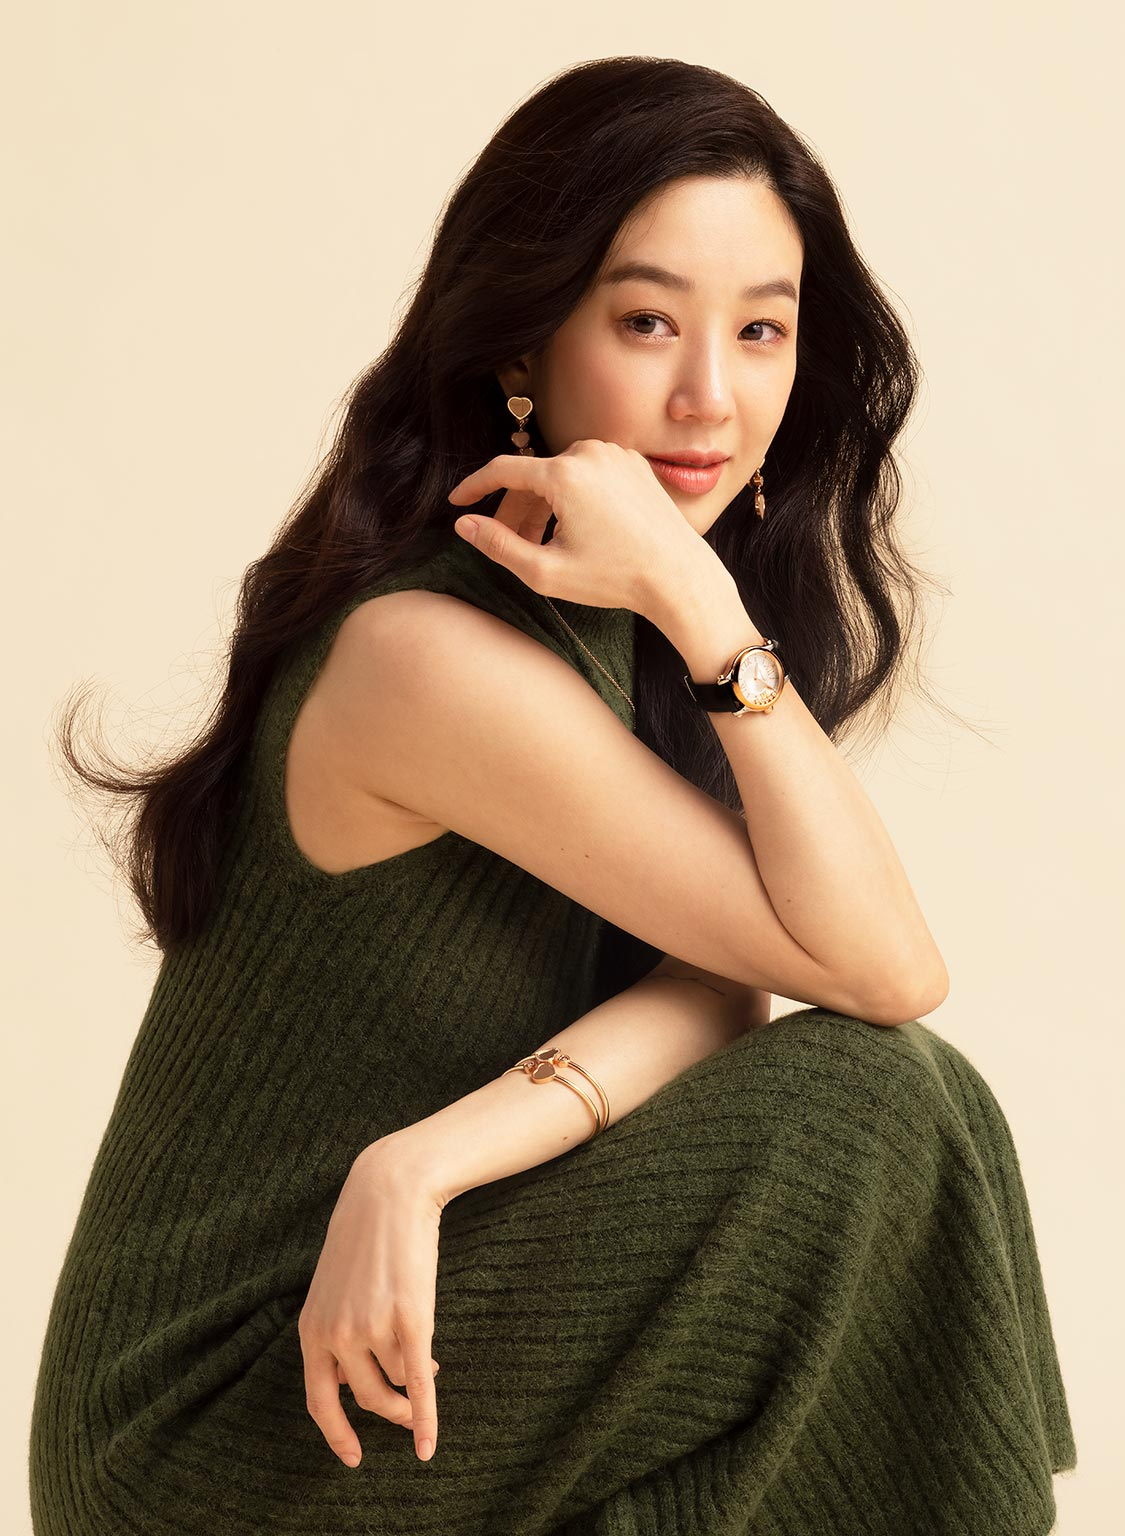 Picture of Ryeo Won in a green dress